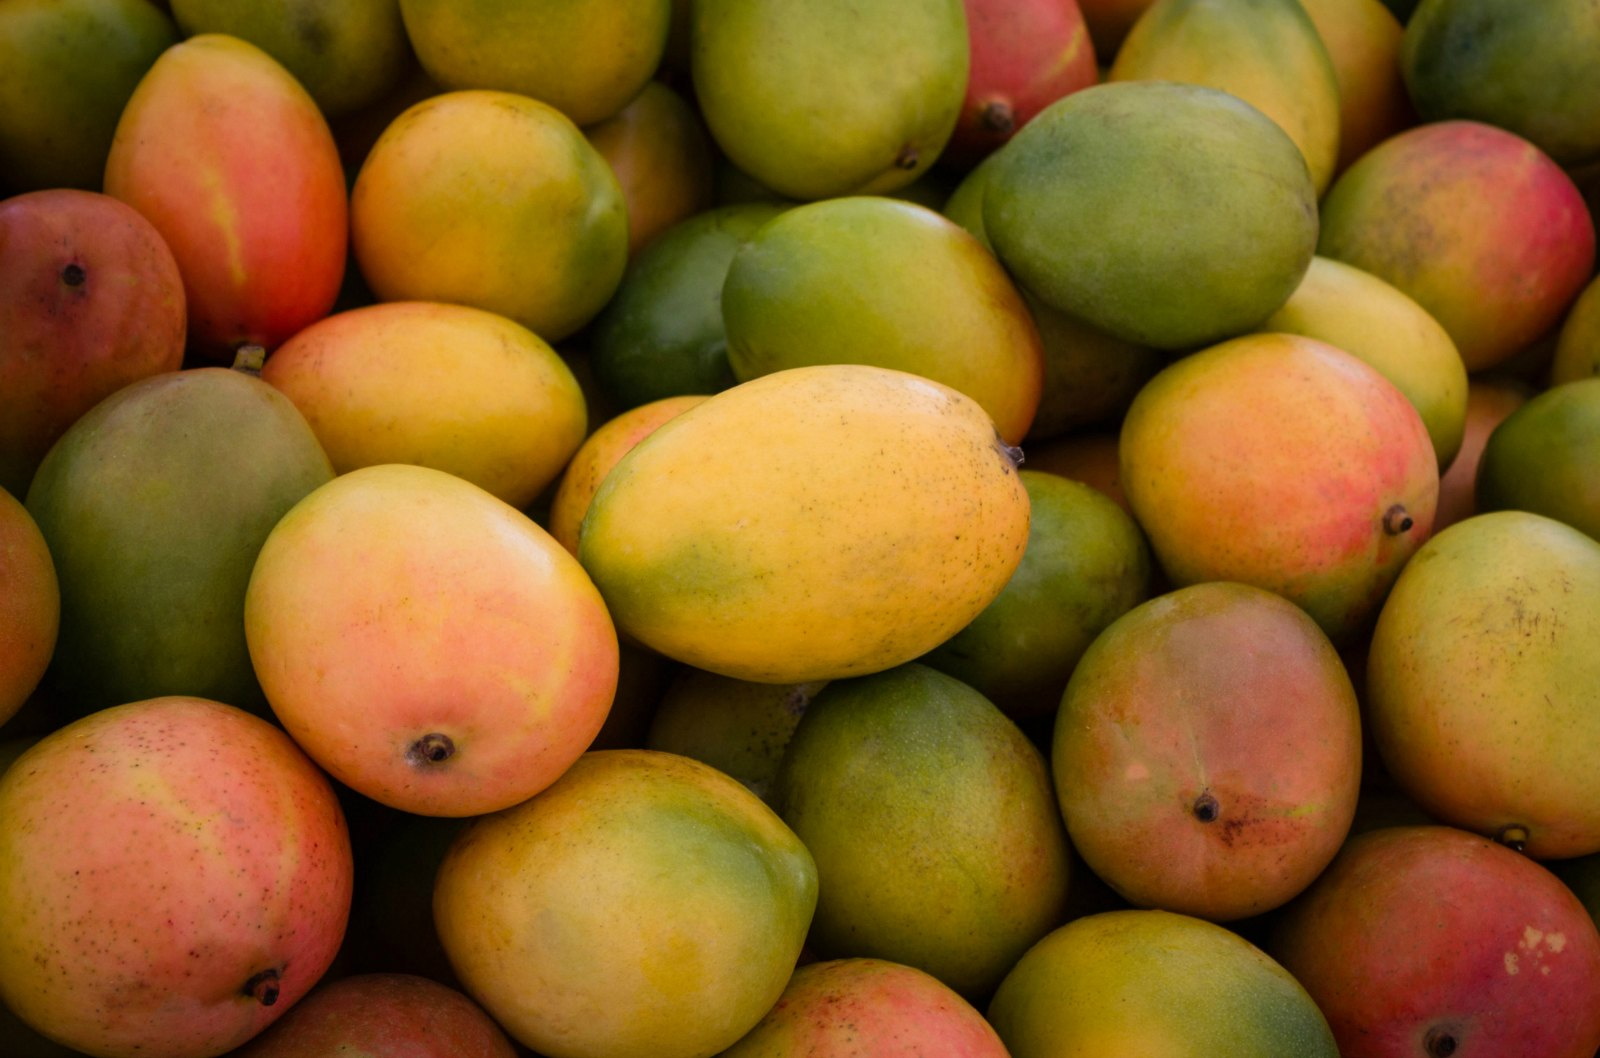 Converting Mango Waste Into Valuable Products